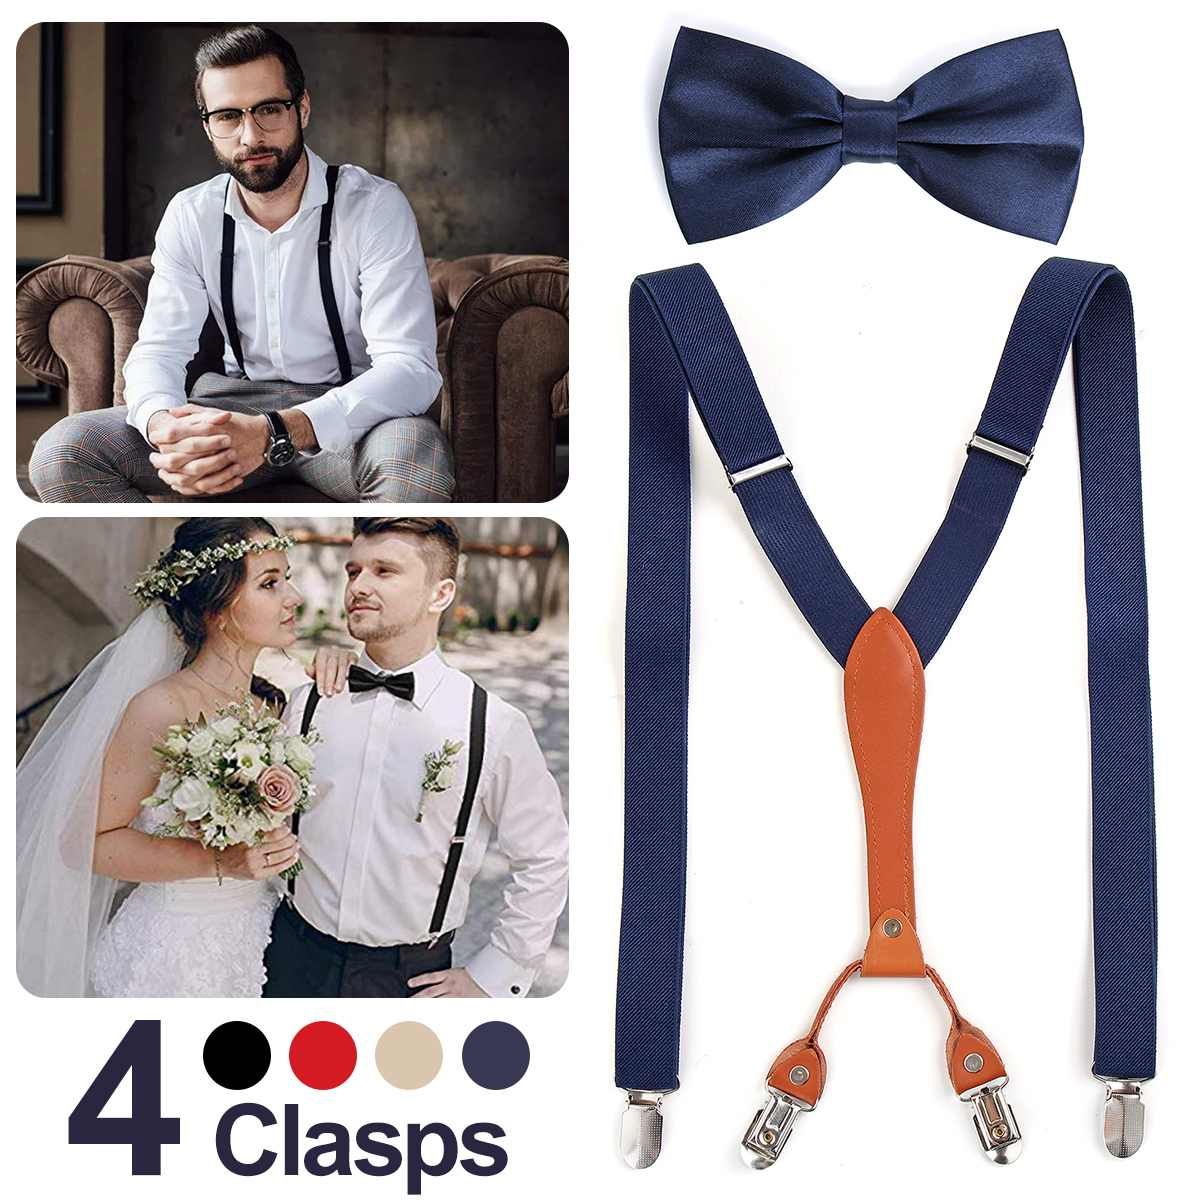 Fashion Man's Belt Bowtie Set Men Women Suspenders Polyester Y-Shape 4 Clasps Suspenders Trousers Strap With Bowknot